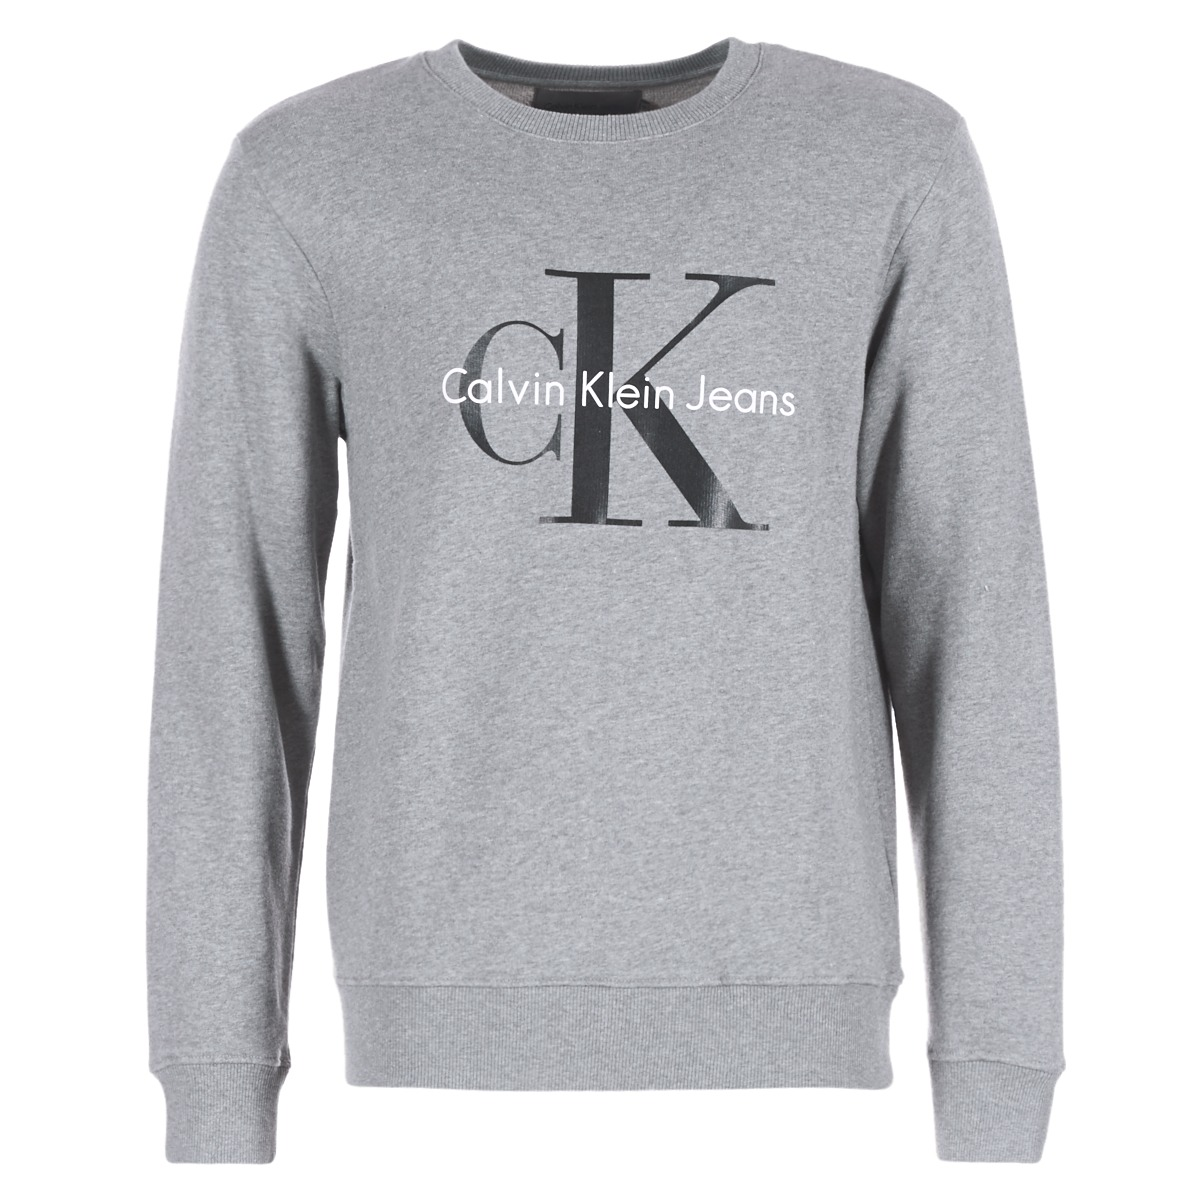 Calvin Klein Jeans Male CREWNECK HWK Men's Wear